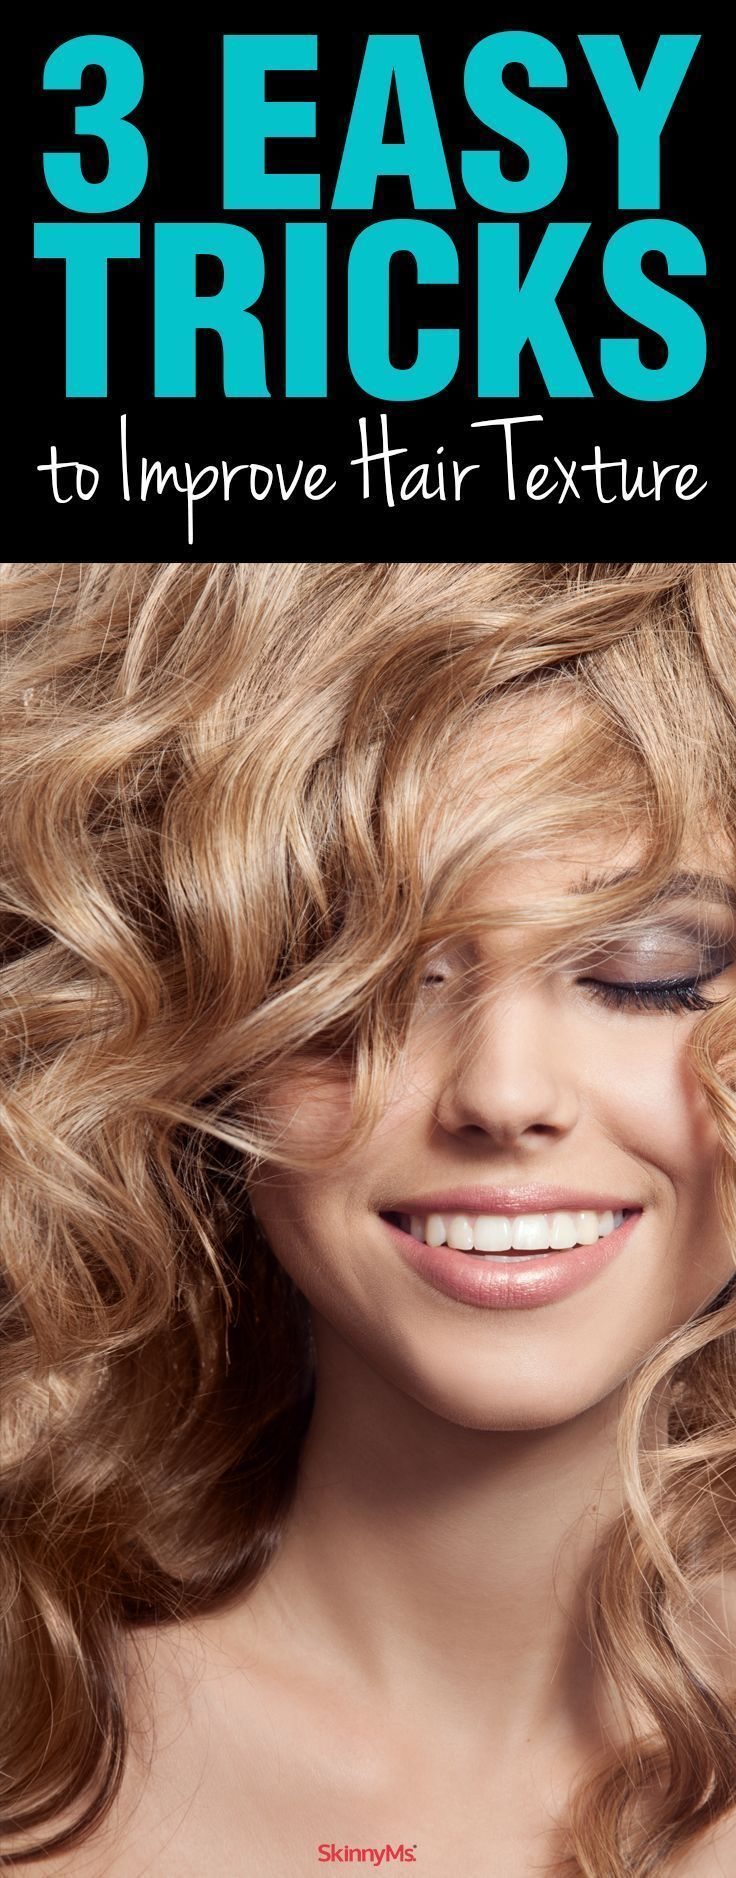 3 Easy Tricks to Improve Hair Texture